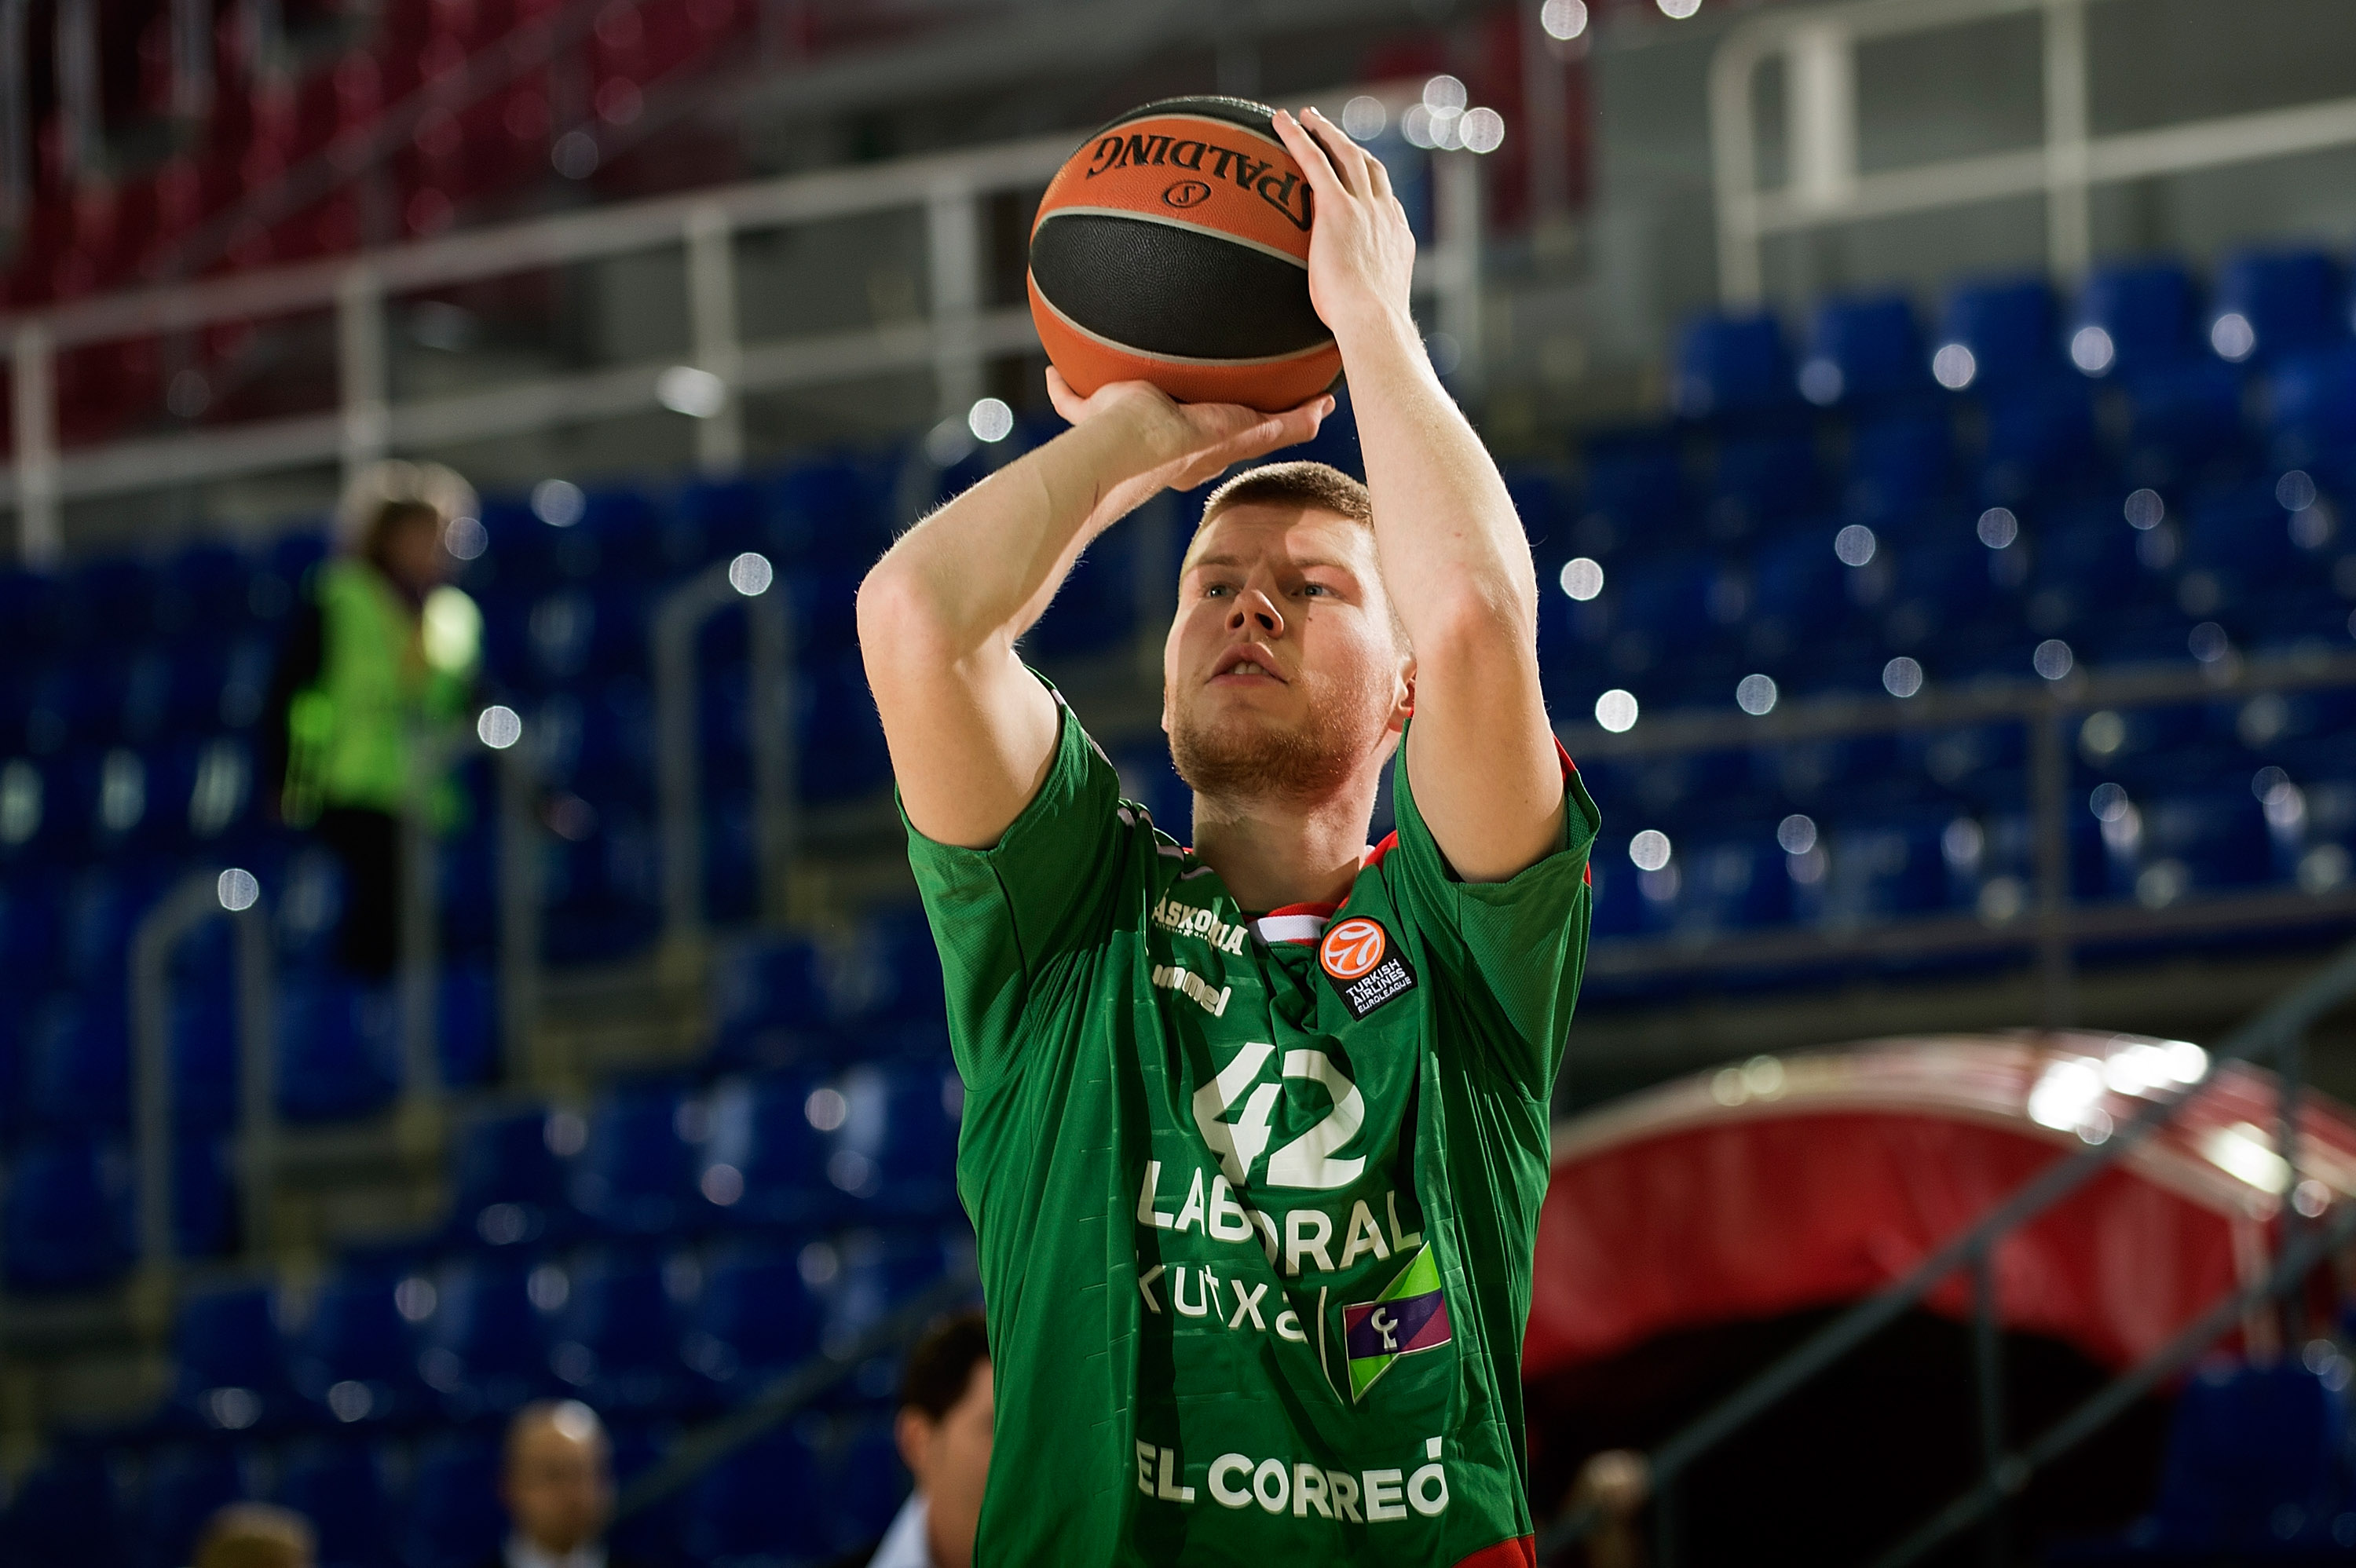 BARCELONA, SPAIN - JANUARY 29:  Davis Bertans, #42 of Laboral Kutxa Vitoria Gasteiz warm up before the match the Turkish Airlines Euroleague Basketball Top 16 Round 5 game between FC Barcelona Lassa v Laboral Kutxa Vitoria Gasteiz at Palau Blaugrana on January 29, 2016 in Barcelona, Spain.  (Photo by Rodolfo Molina/EB via Getty Images)